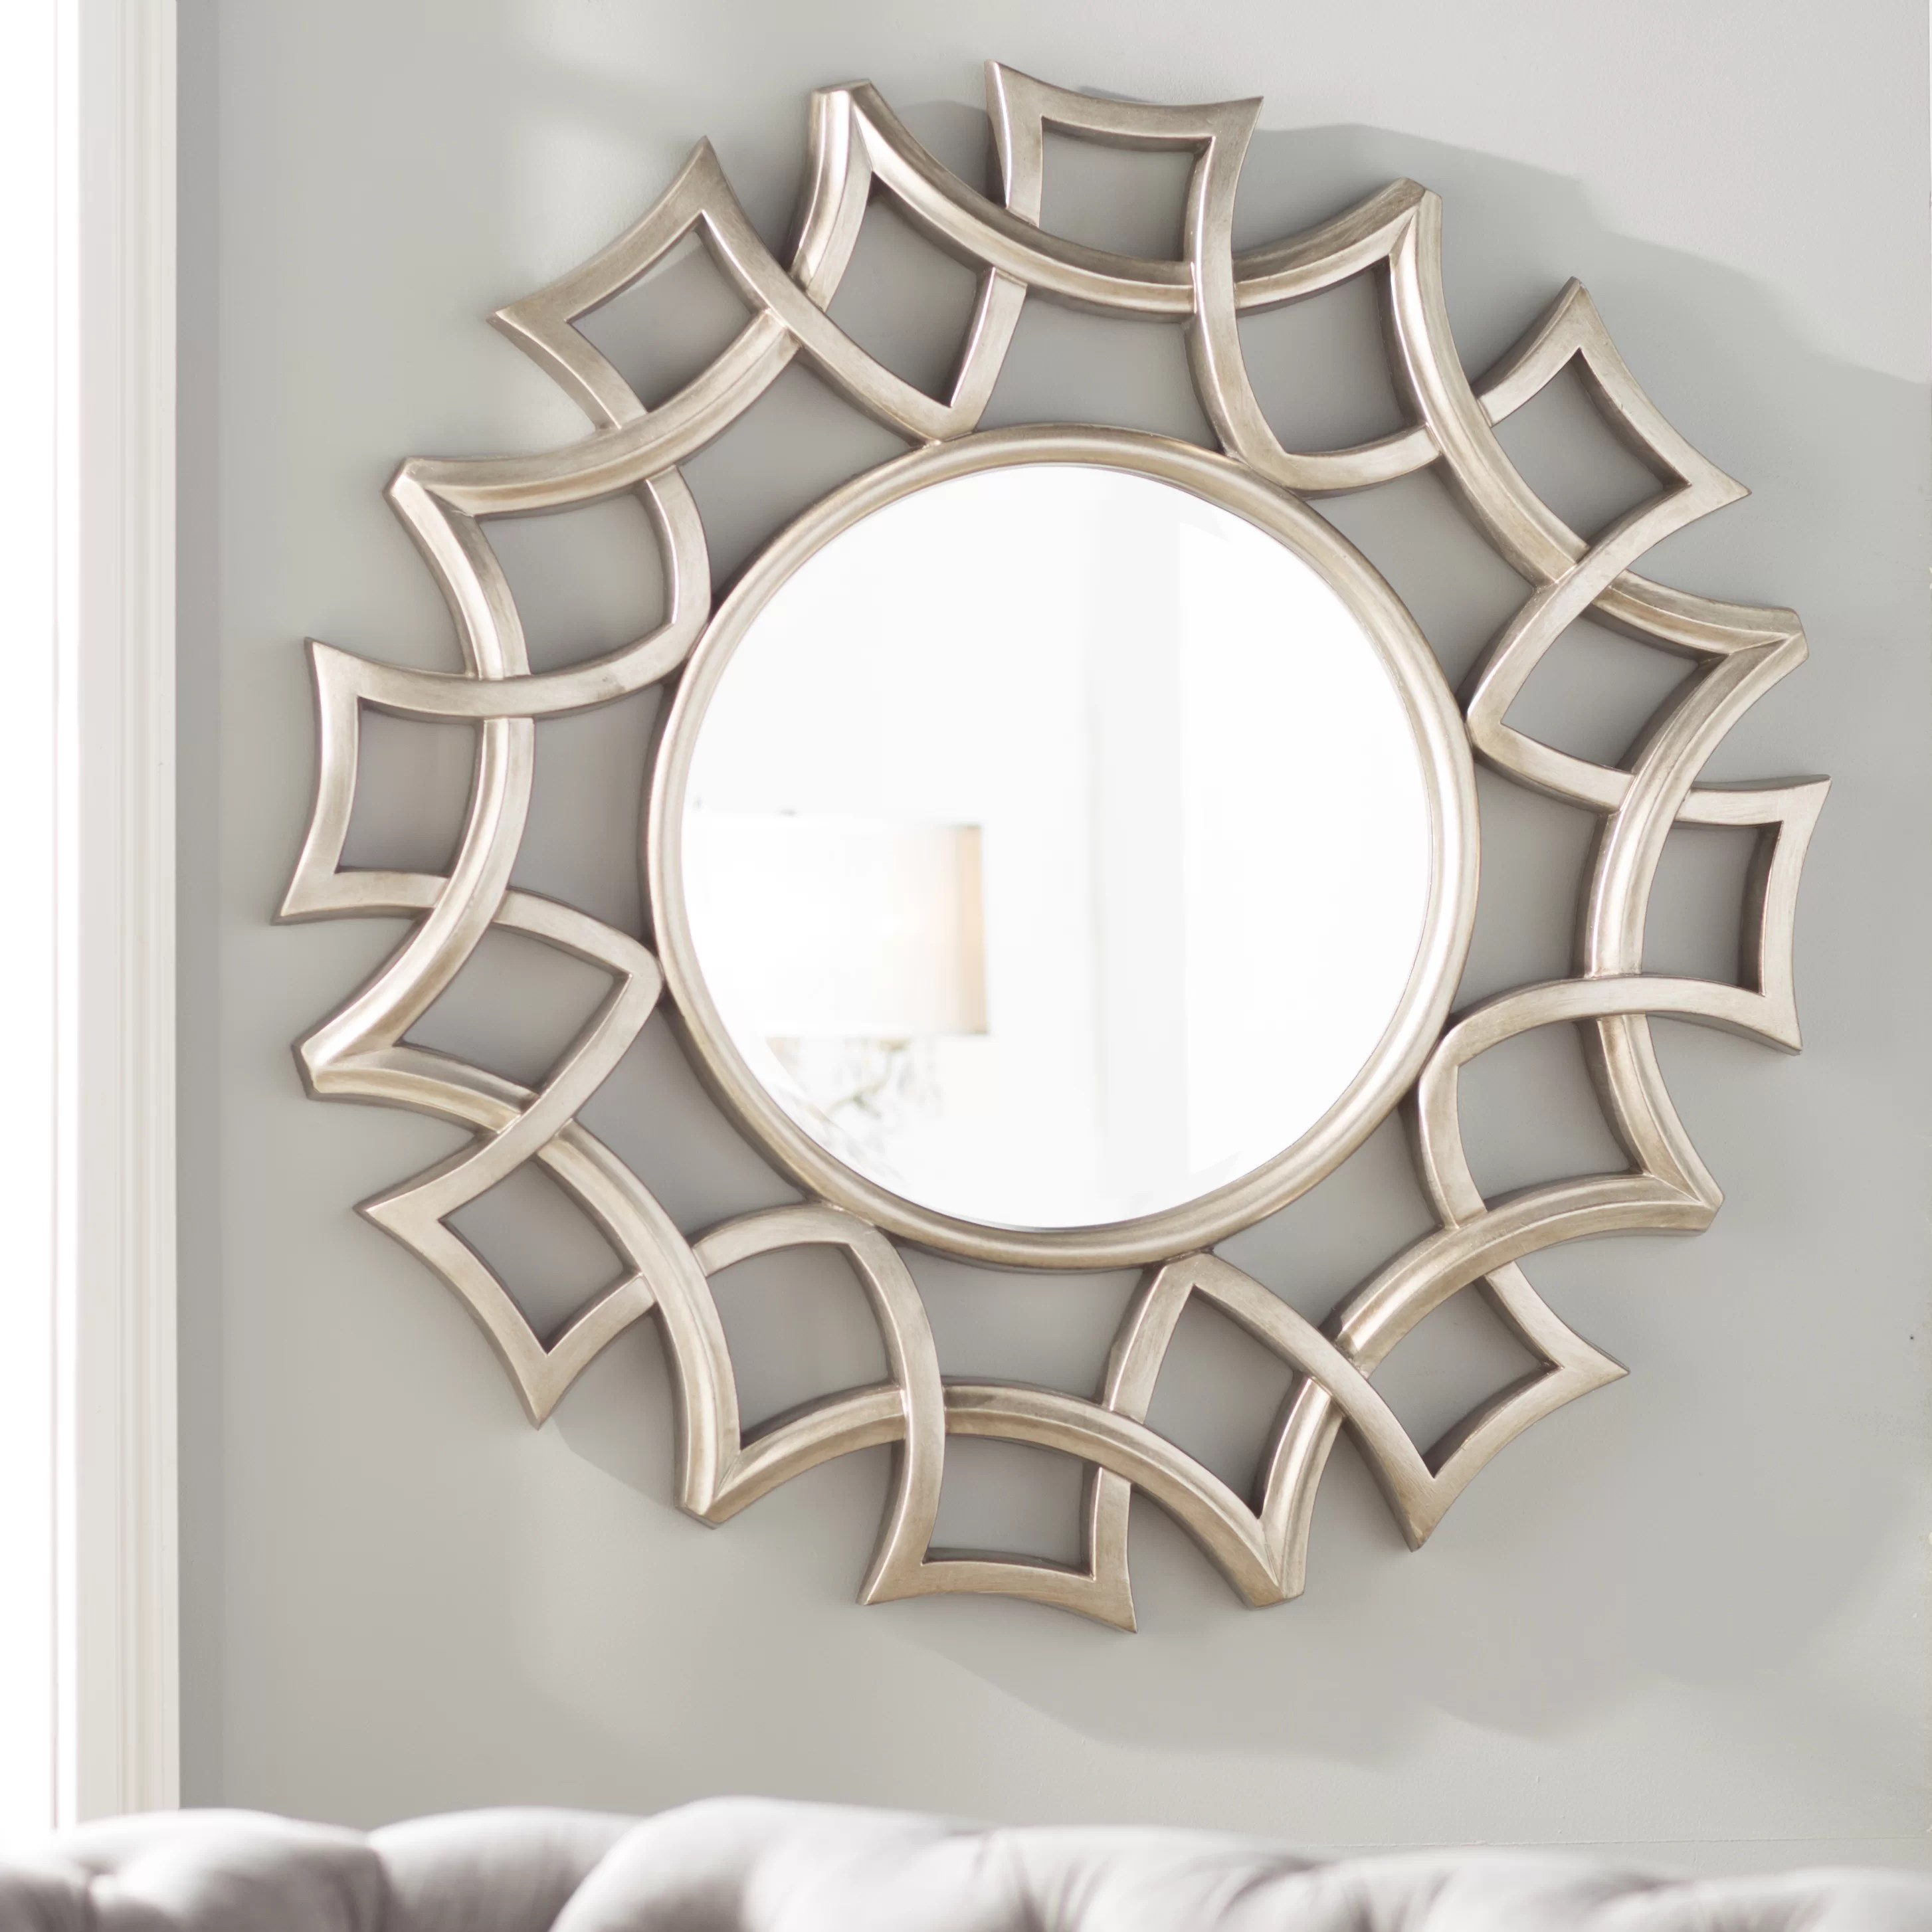 Sun Shaped Mirrors Burst Mirror Wayfair